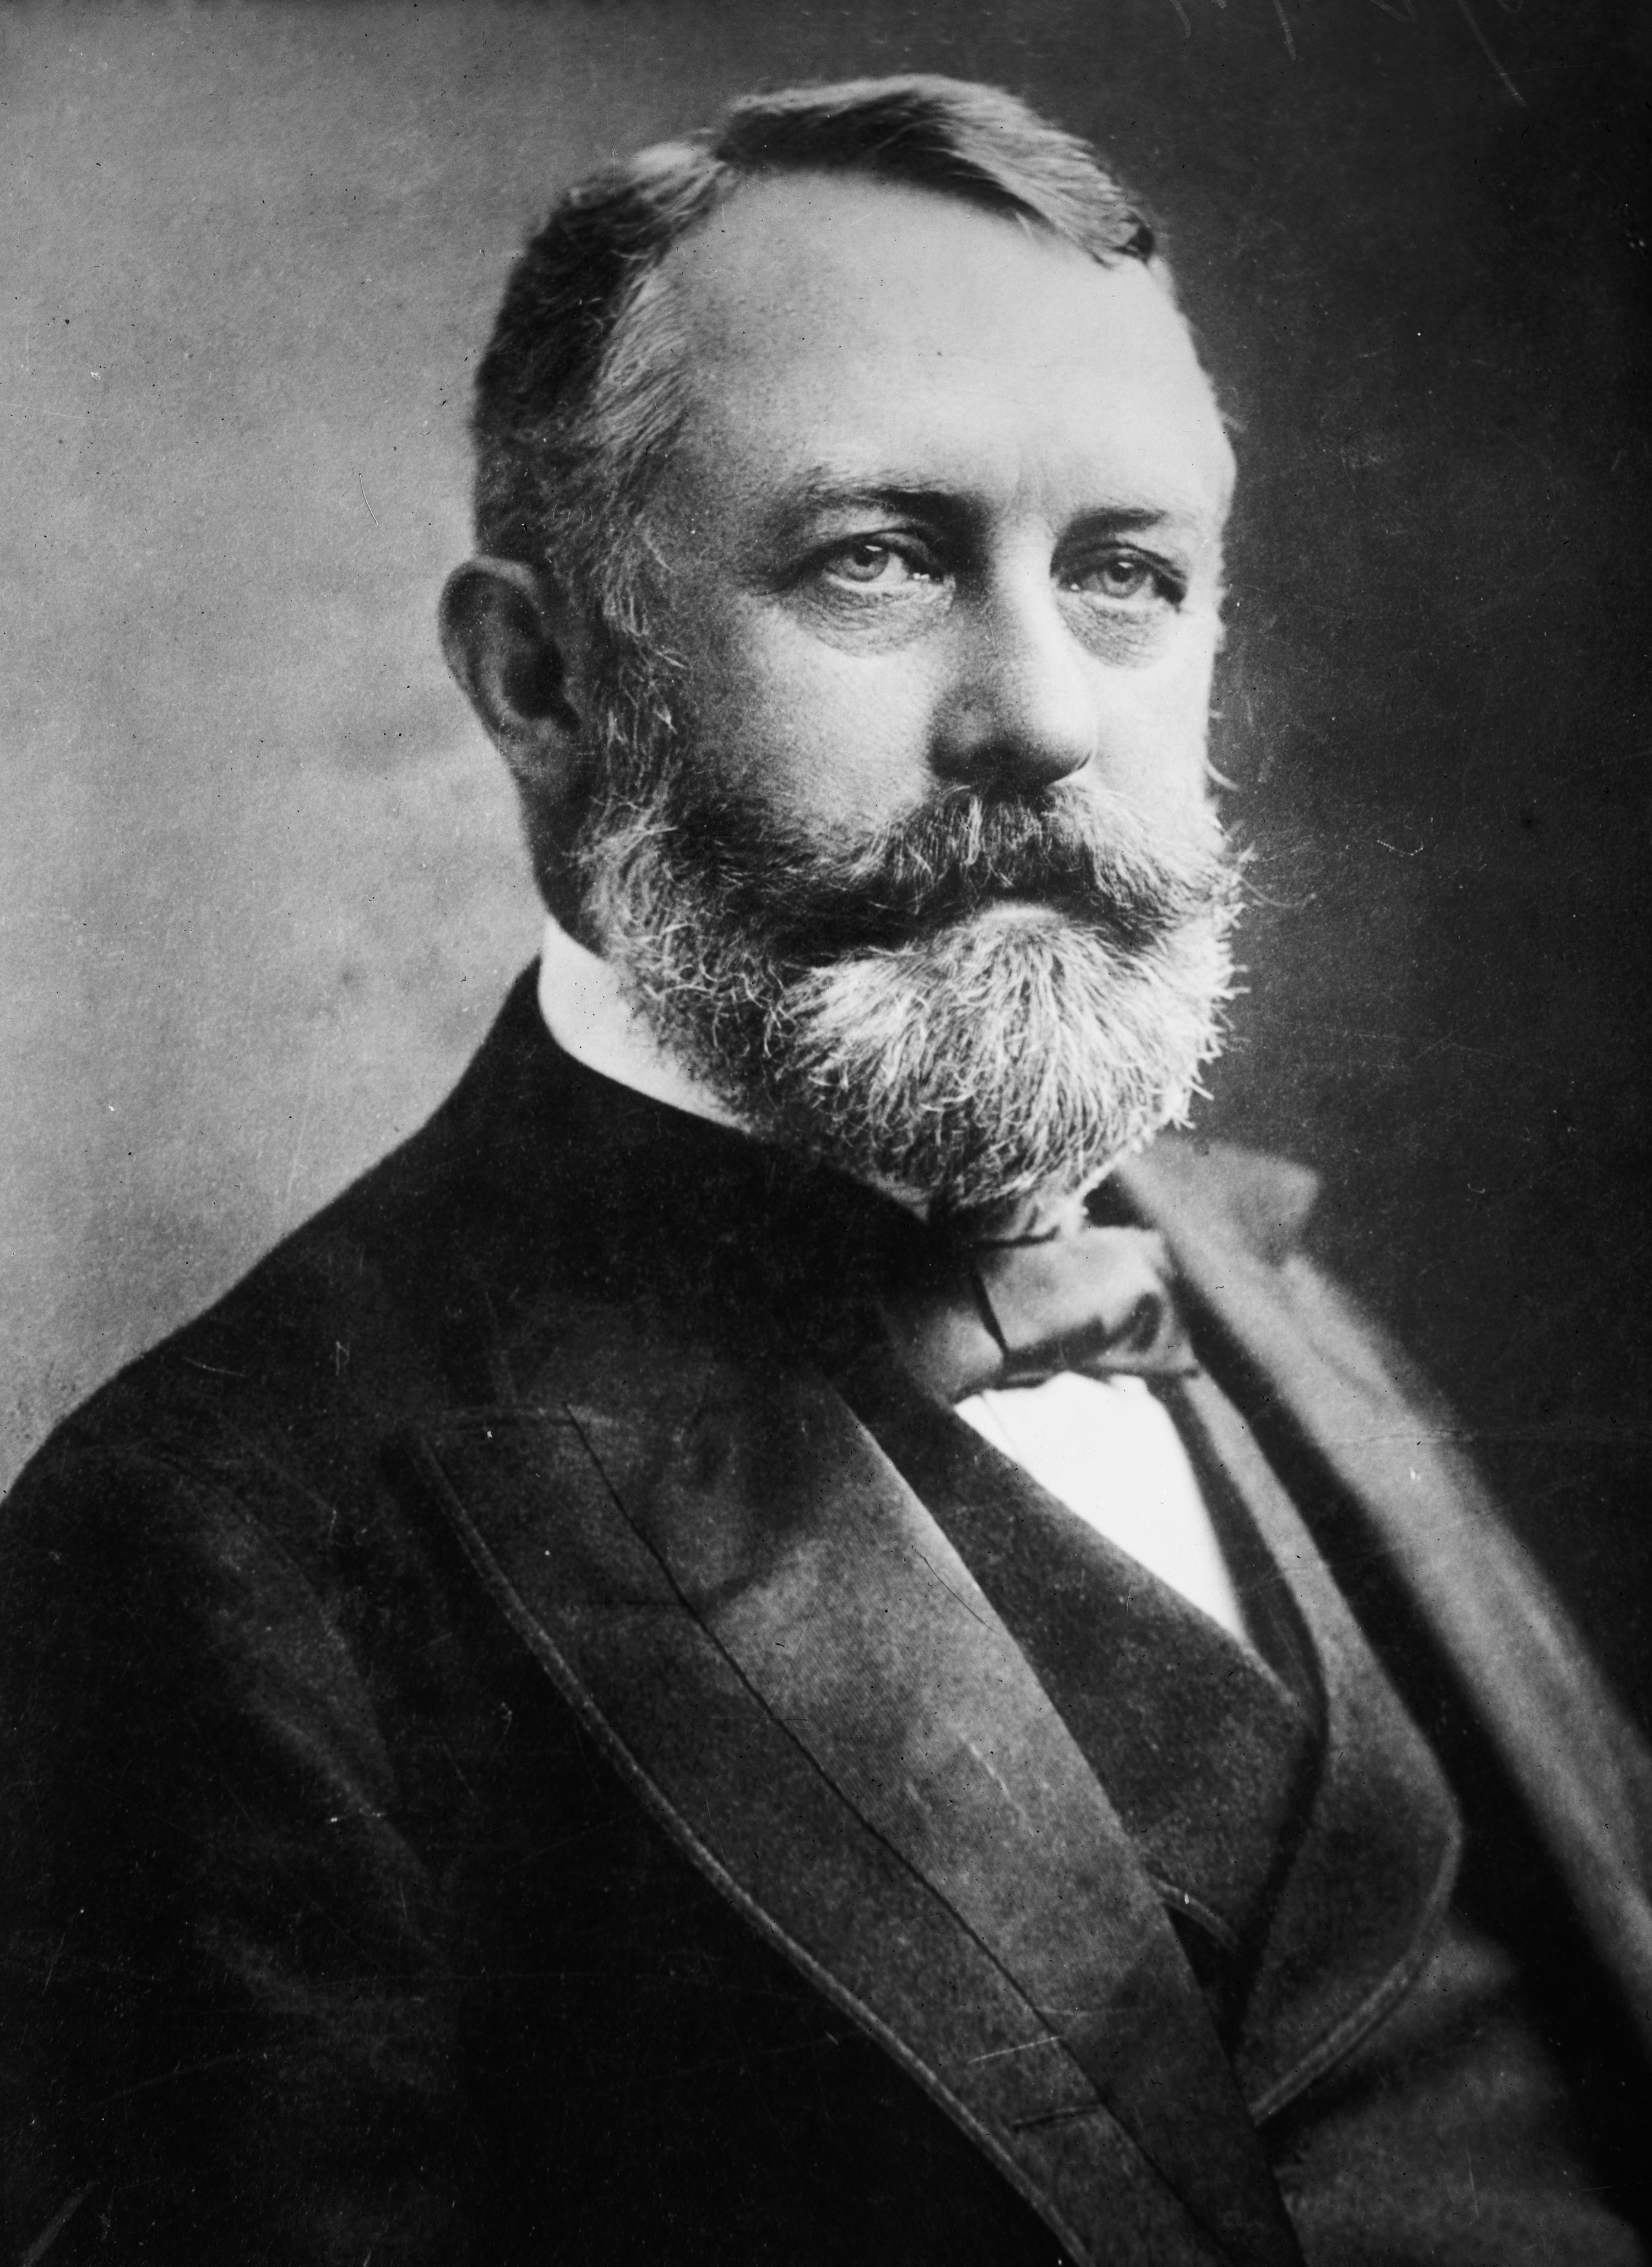 Description Henry Clay Frick.jpg